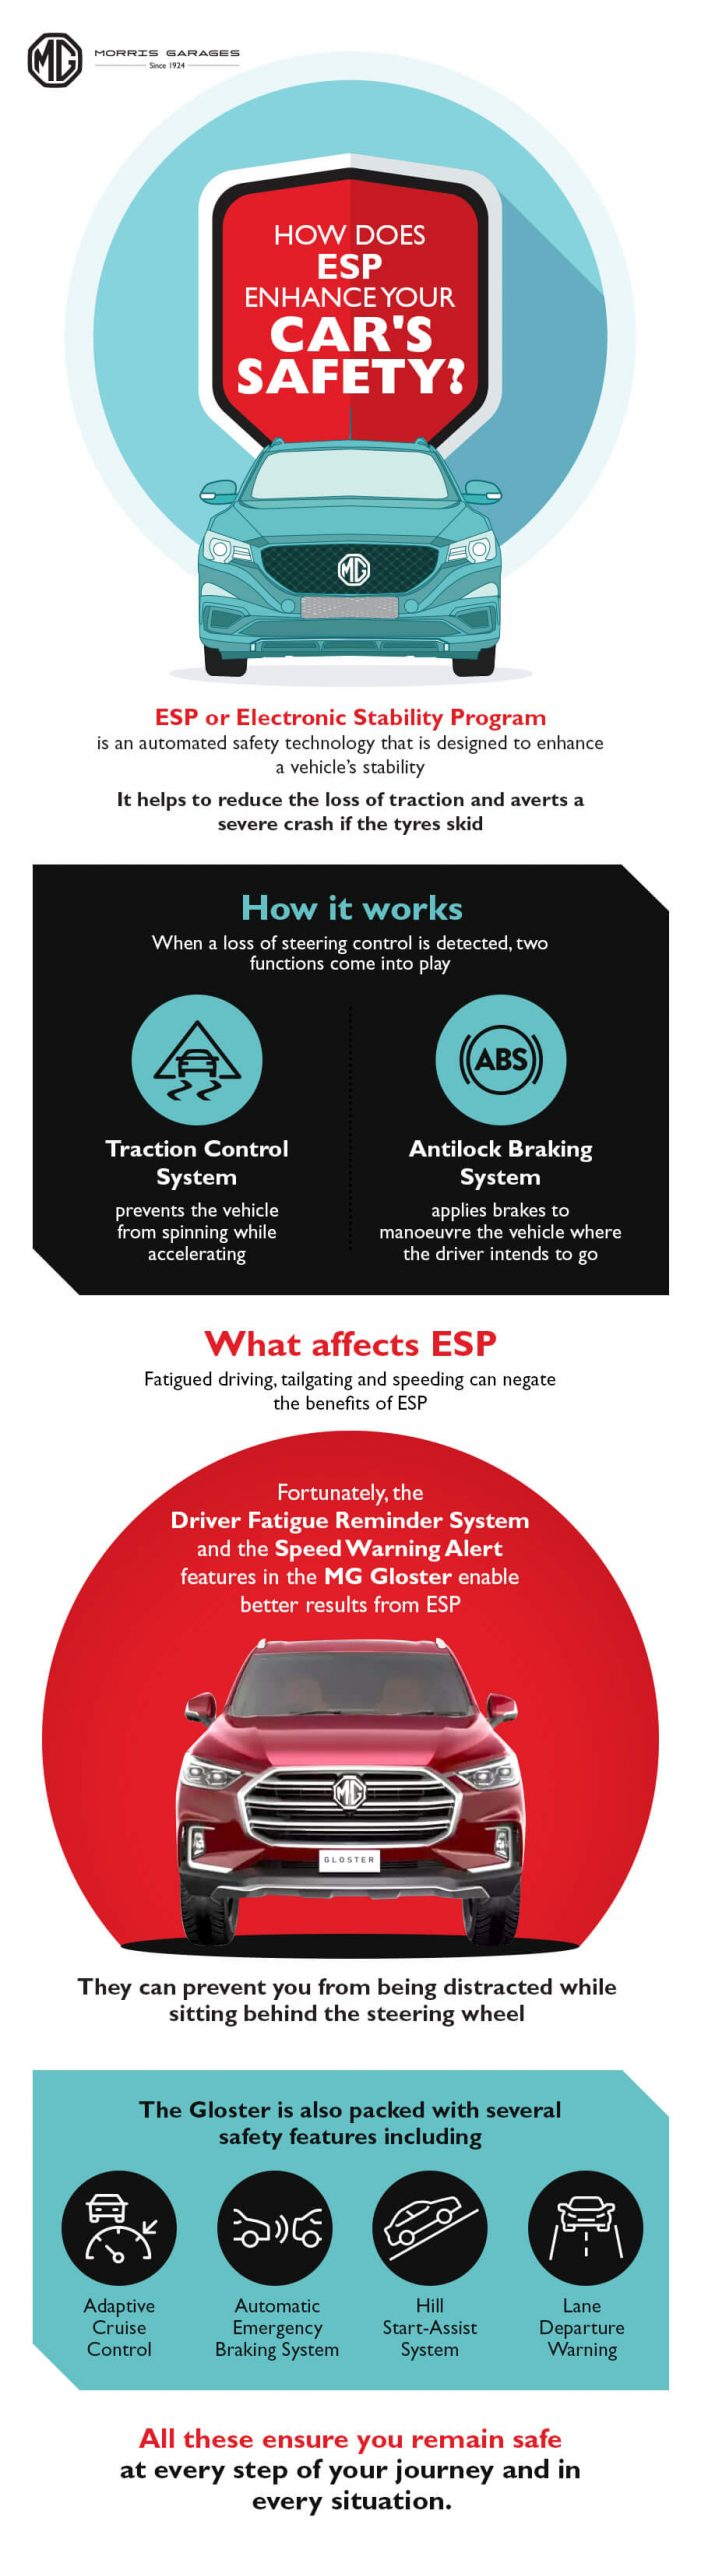 How does ESP enhance your car's safety